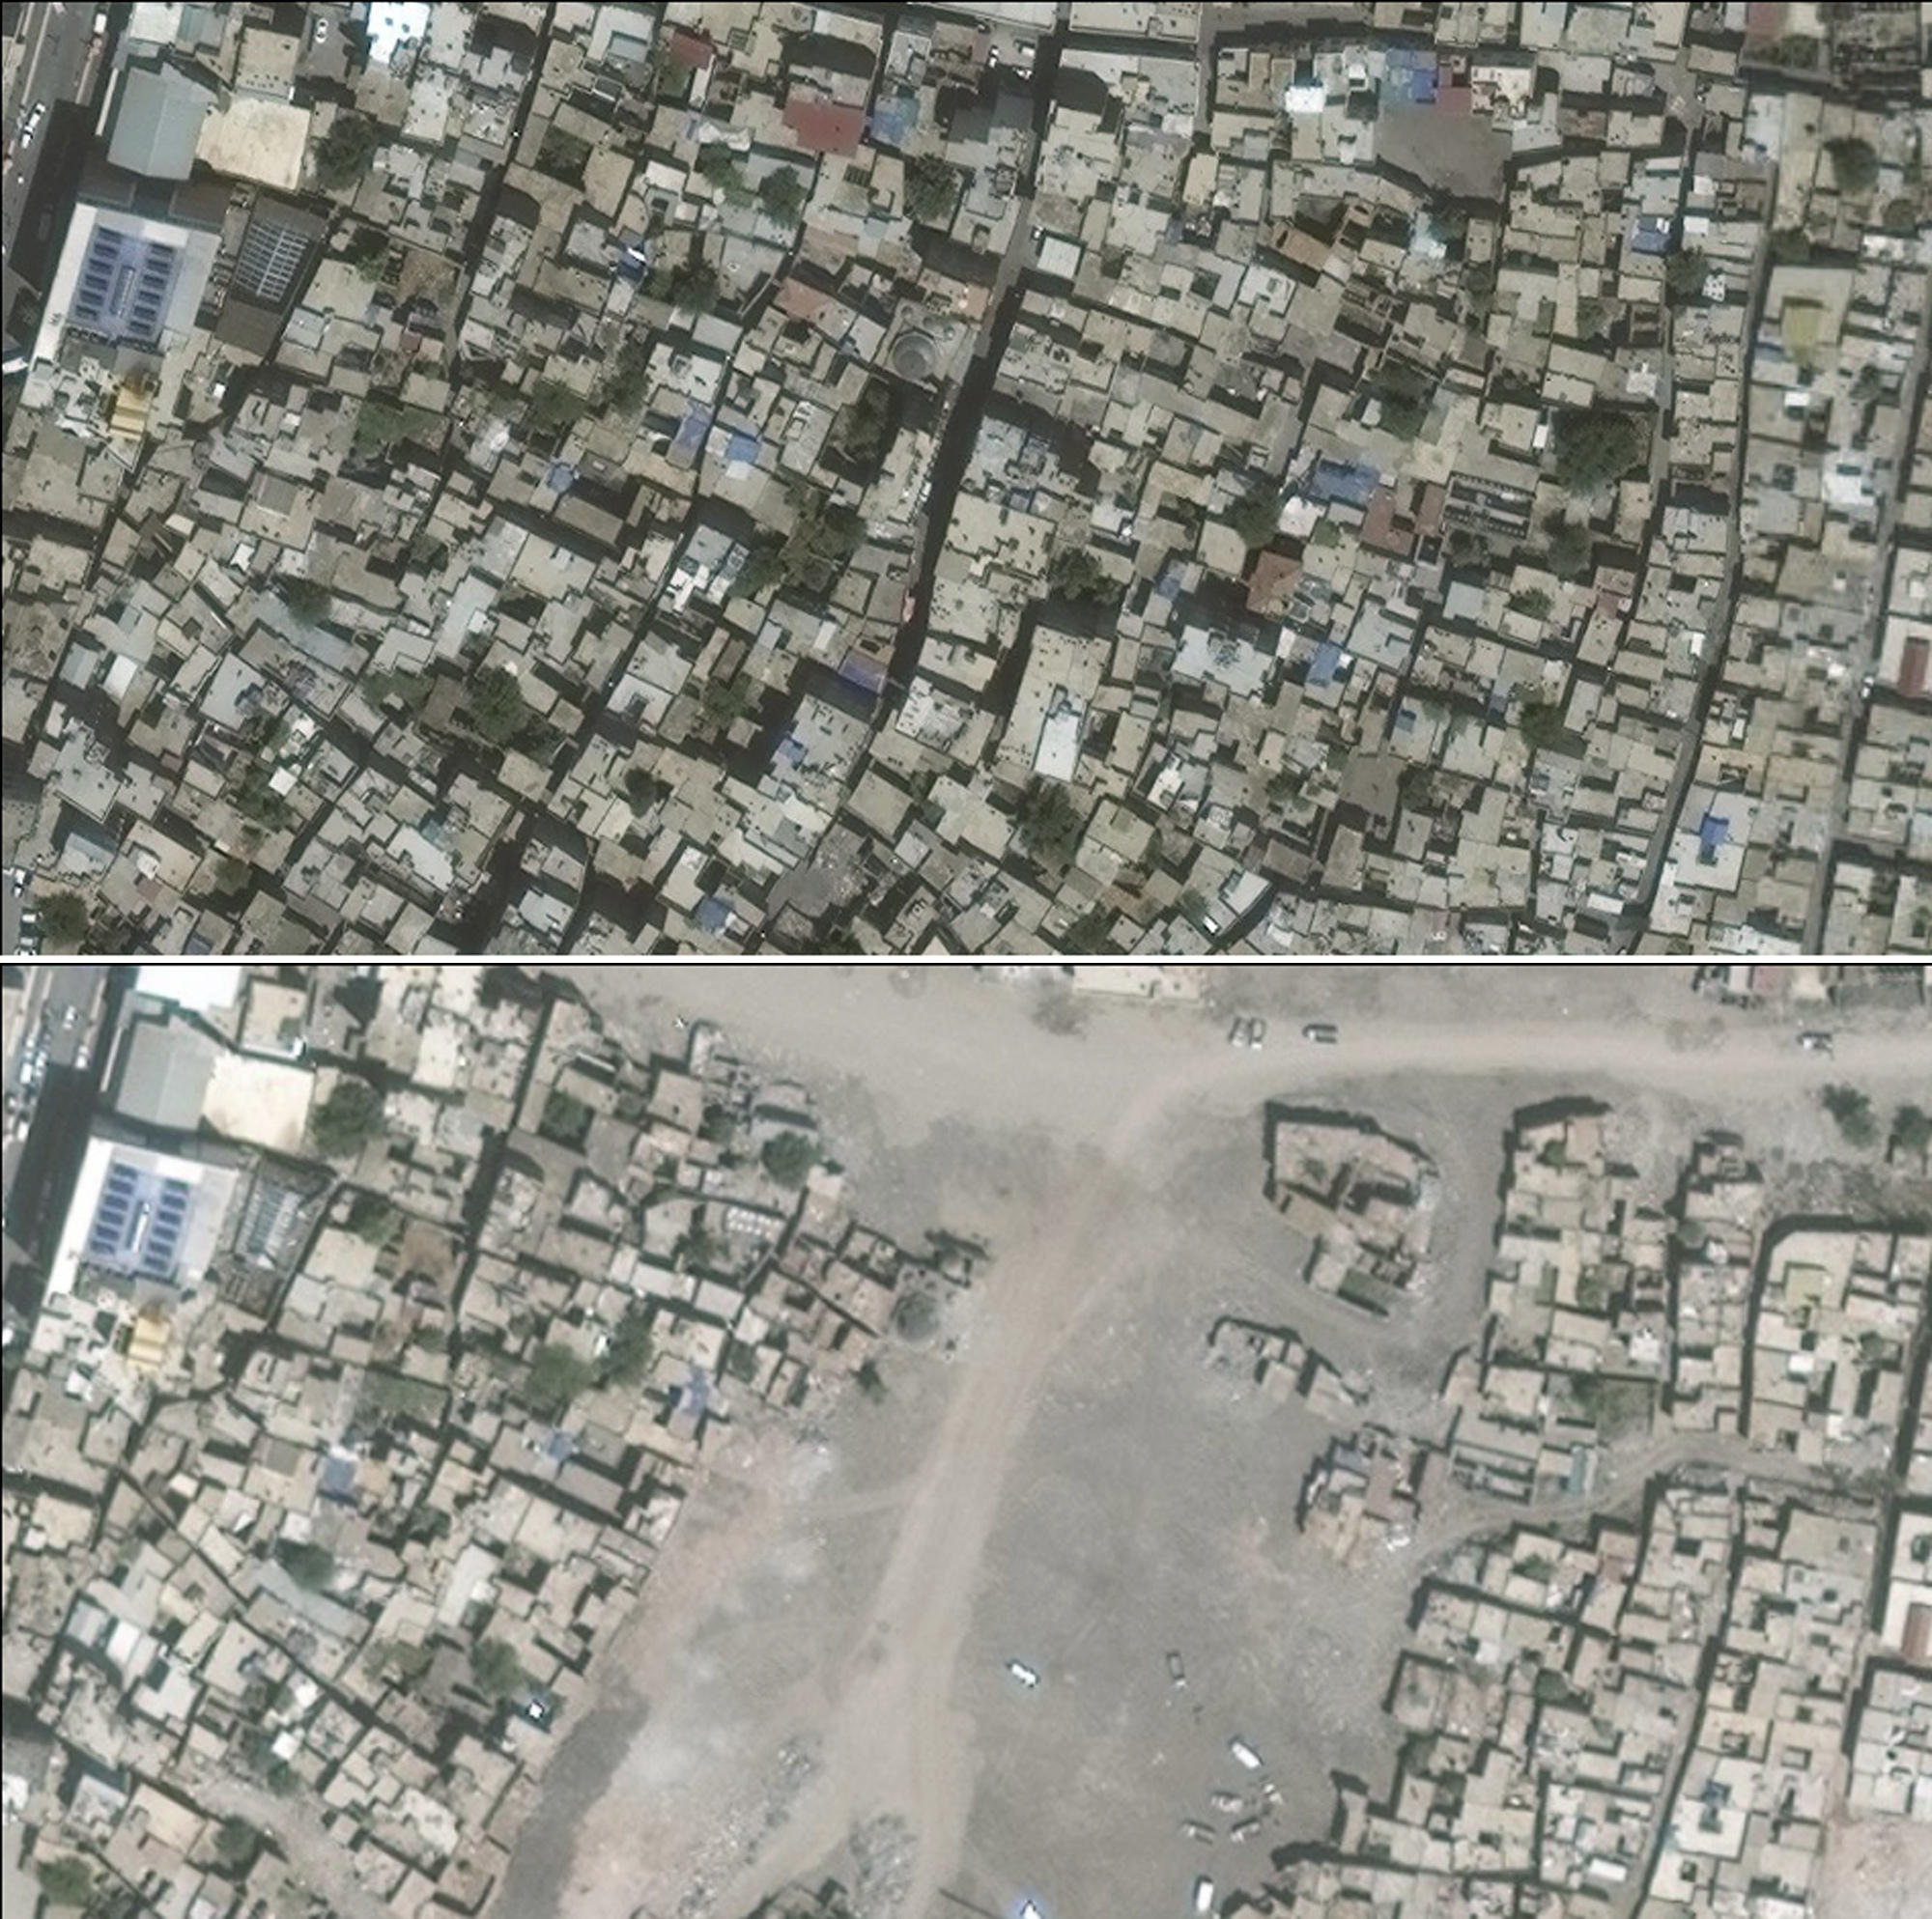 Combo from satellite photos provided by UNOSAT shows the city of Sur in Turkey's Diyarbakir Province on June 22, 2015, top, and on July 26, 2016 bottom. (DigitalGlobe/UNOSAT via AP)